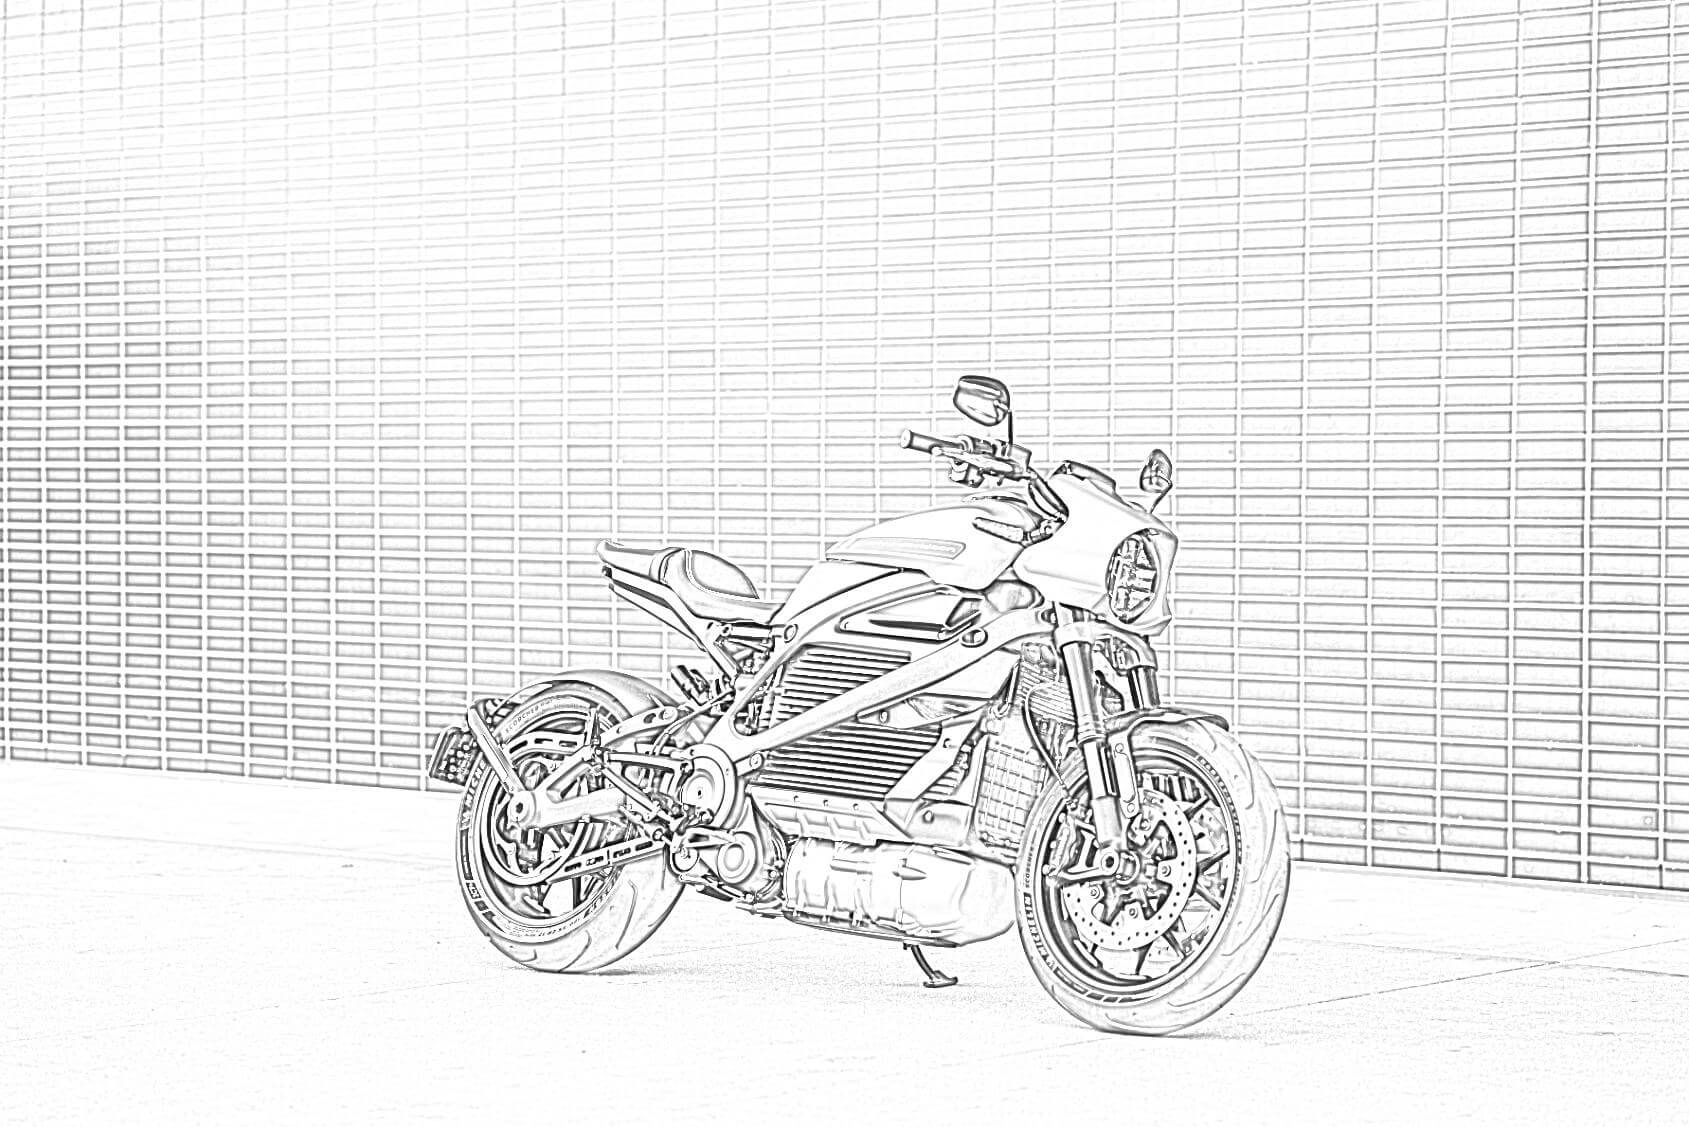 Harley Davidson Livewire Coloring Page